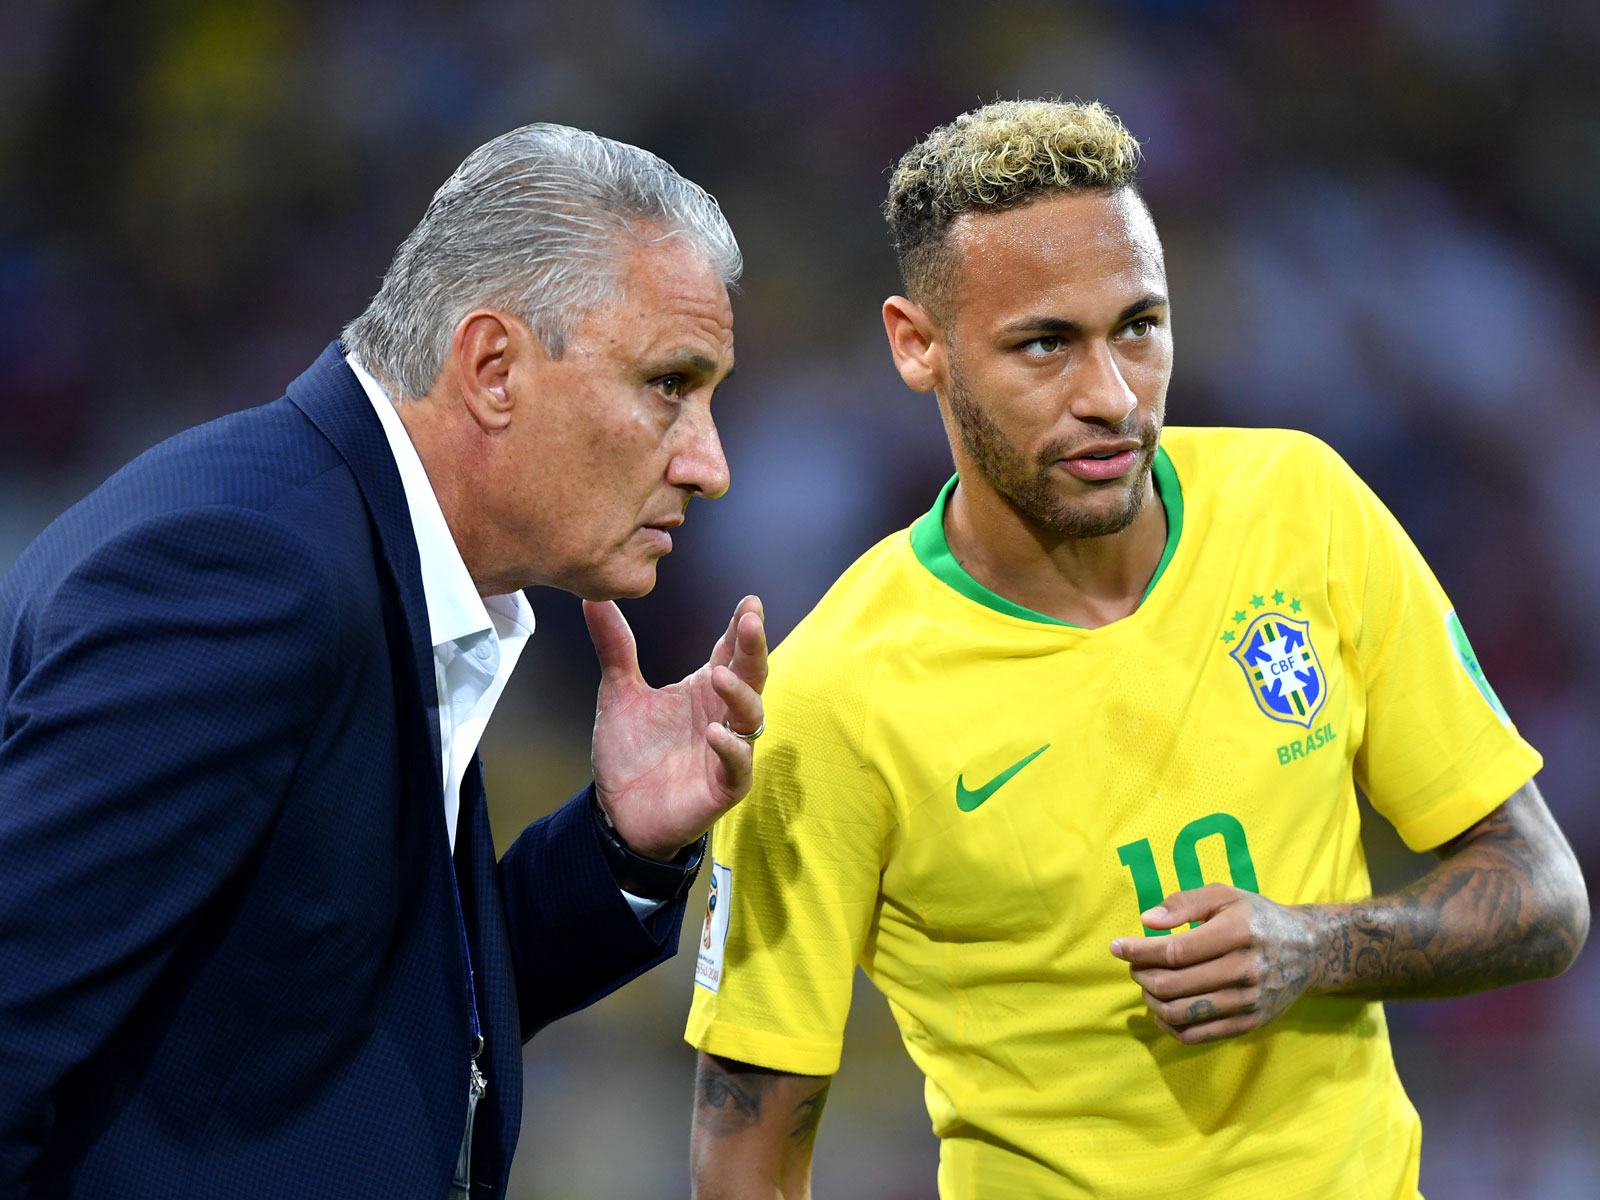 Neymar and Tite speak during Brazil's 2-0 win over Serbia at the World Cup